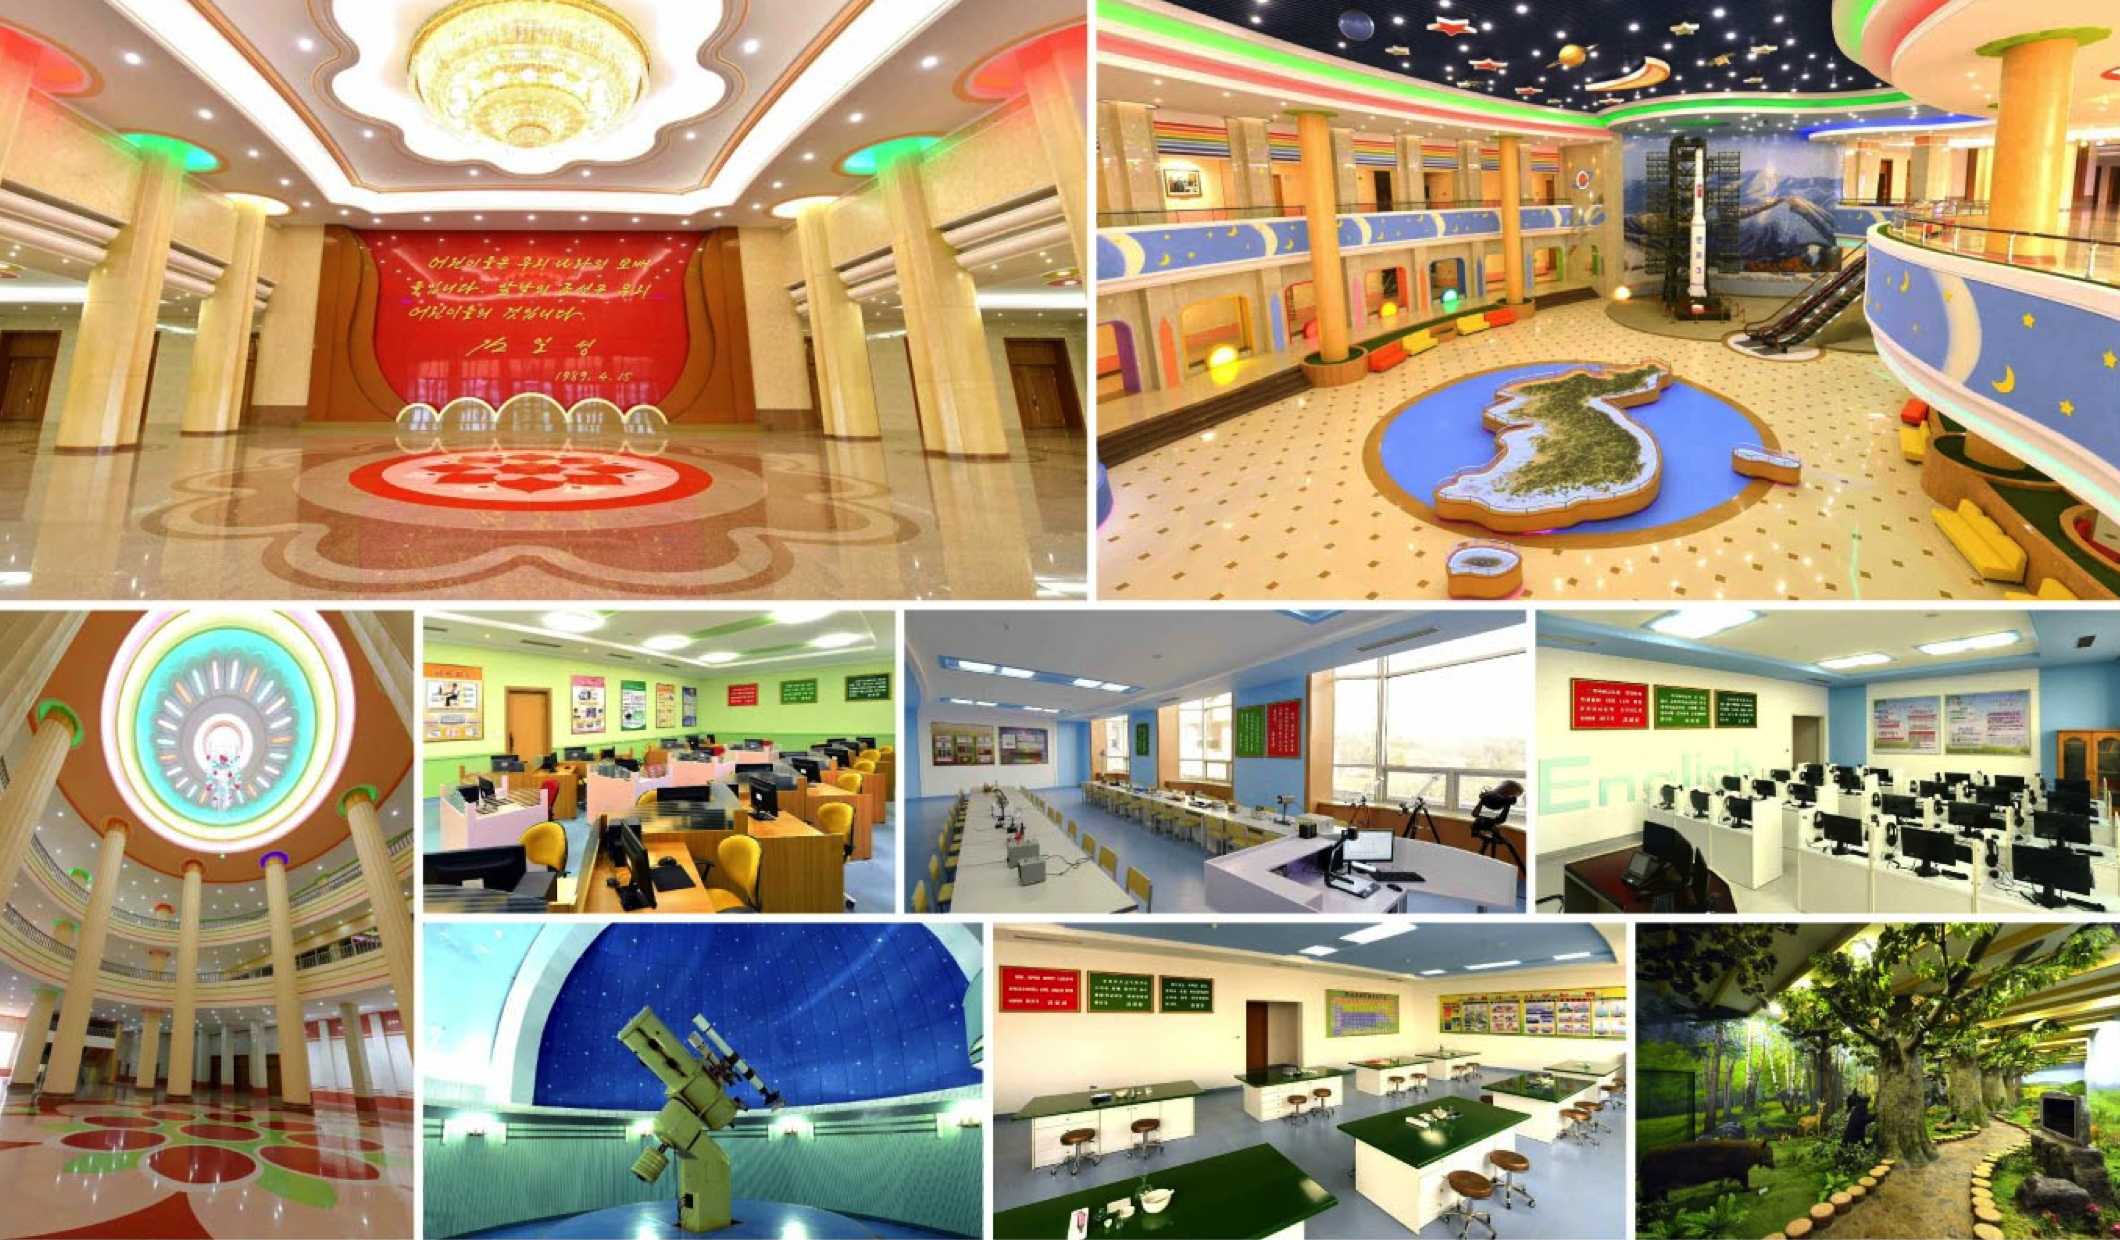 View of the renovation lobbies and classrooms in the renovated Mangyo'ngdae Schoolchldren's Palace in Pyongyang (Photo: Rodong Sinmun).